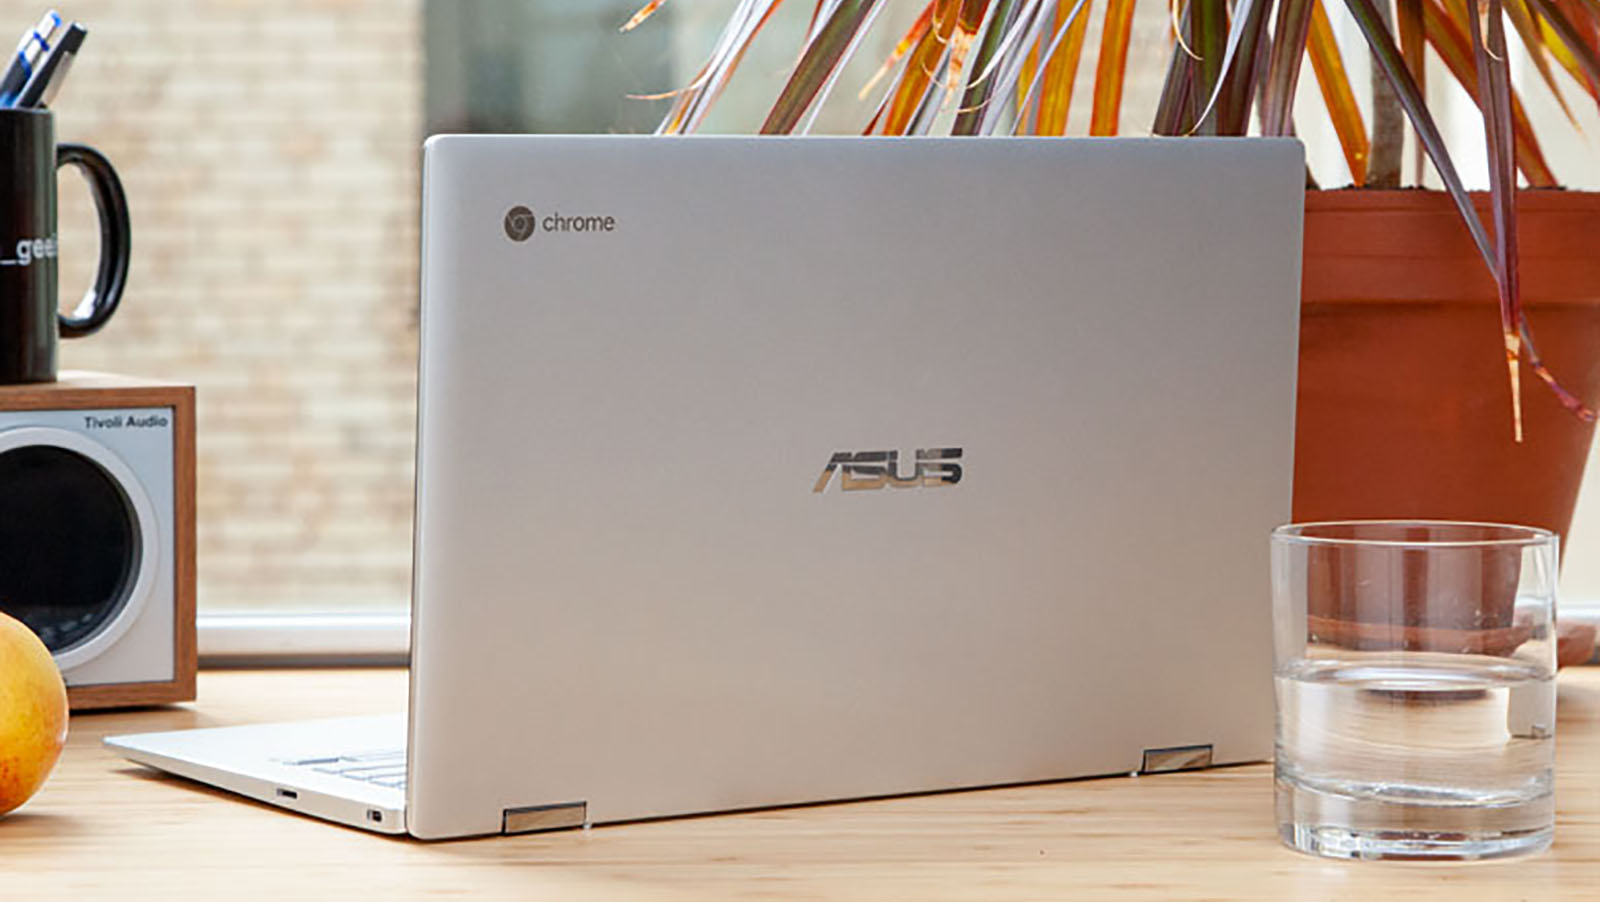 Best Chromebook Deals in August | Tom's Guide